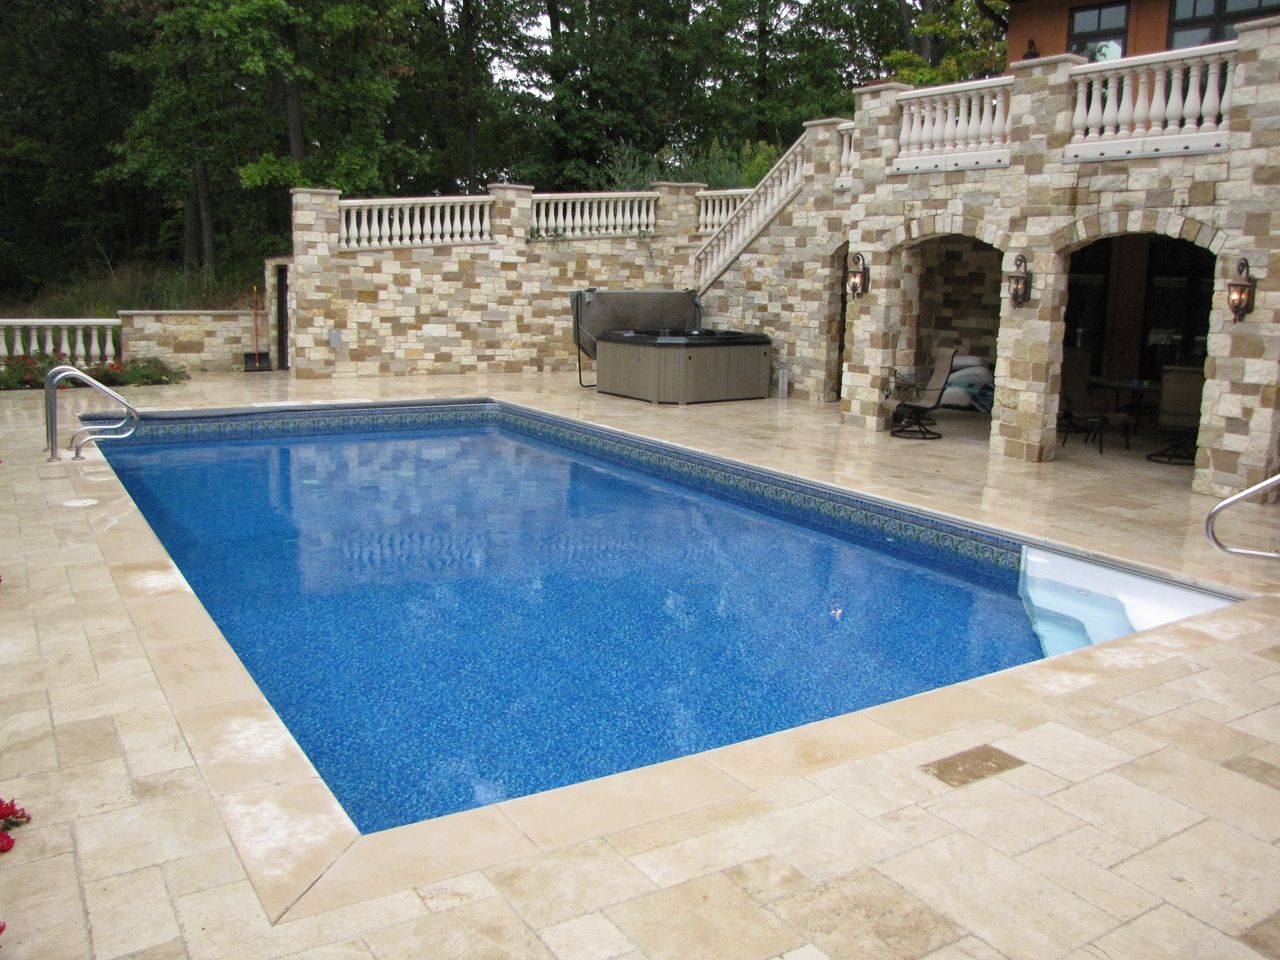 Pool Liner Designs For Inground Pools inground pools royal swimming pools swimming pool kits and more Swiming Pools Vinyl Pool Liners That Look Like Gunite With Marble Inlay Crystal Pool Liner Also